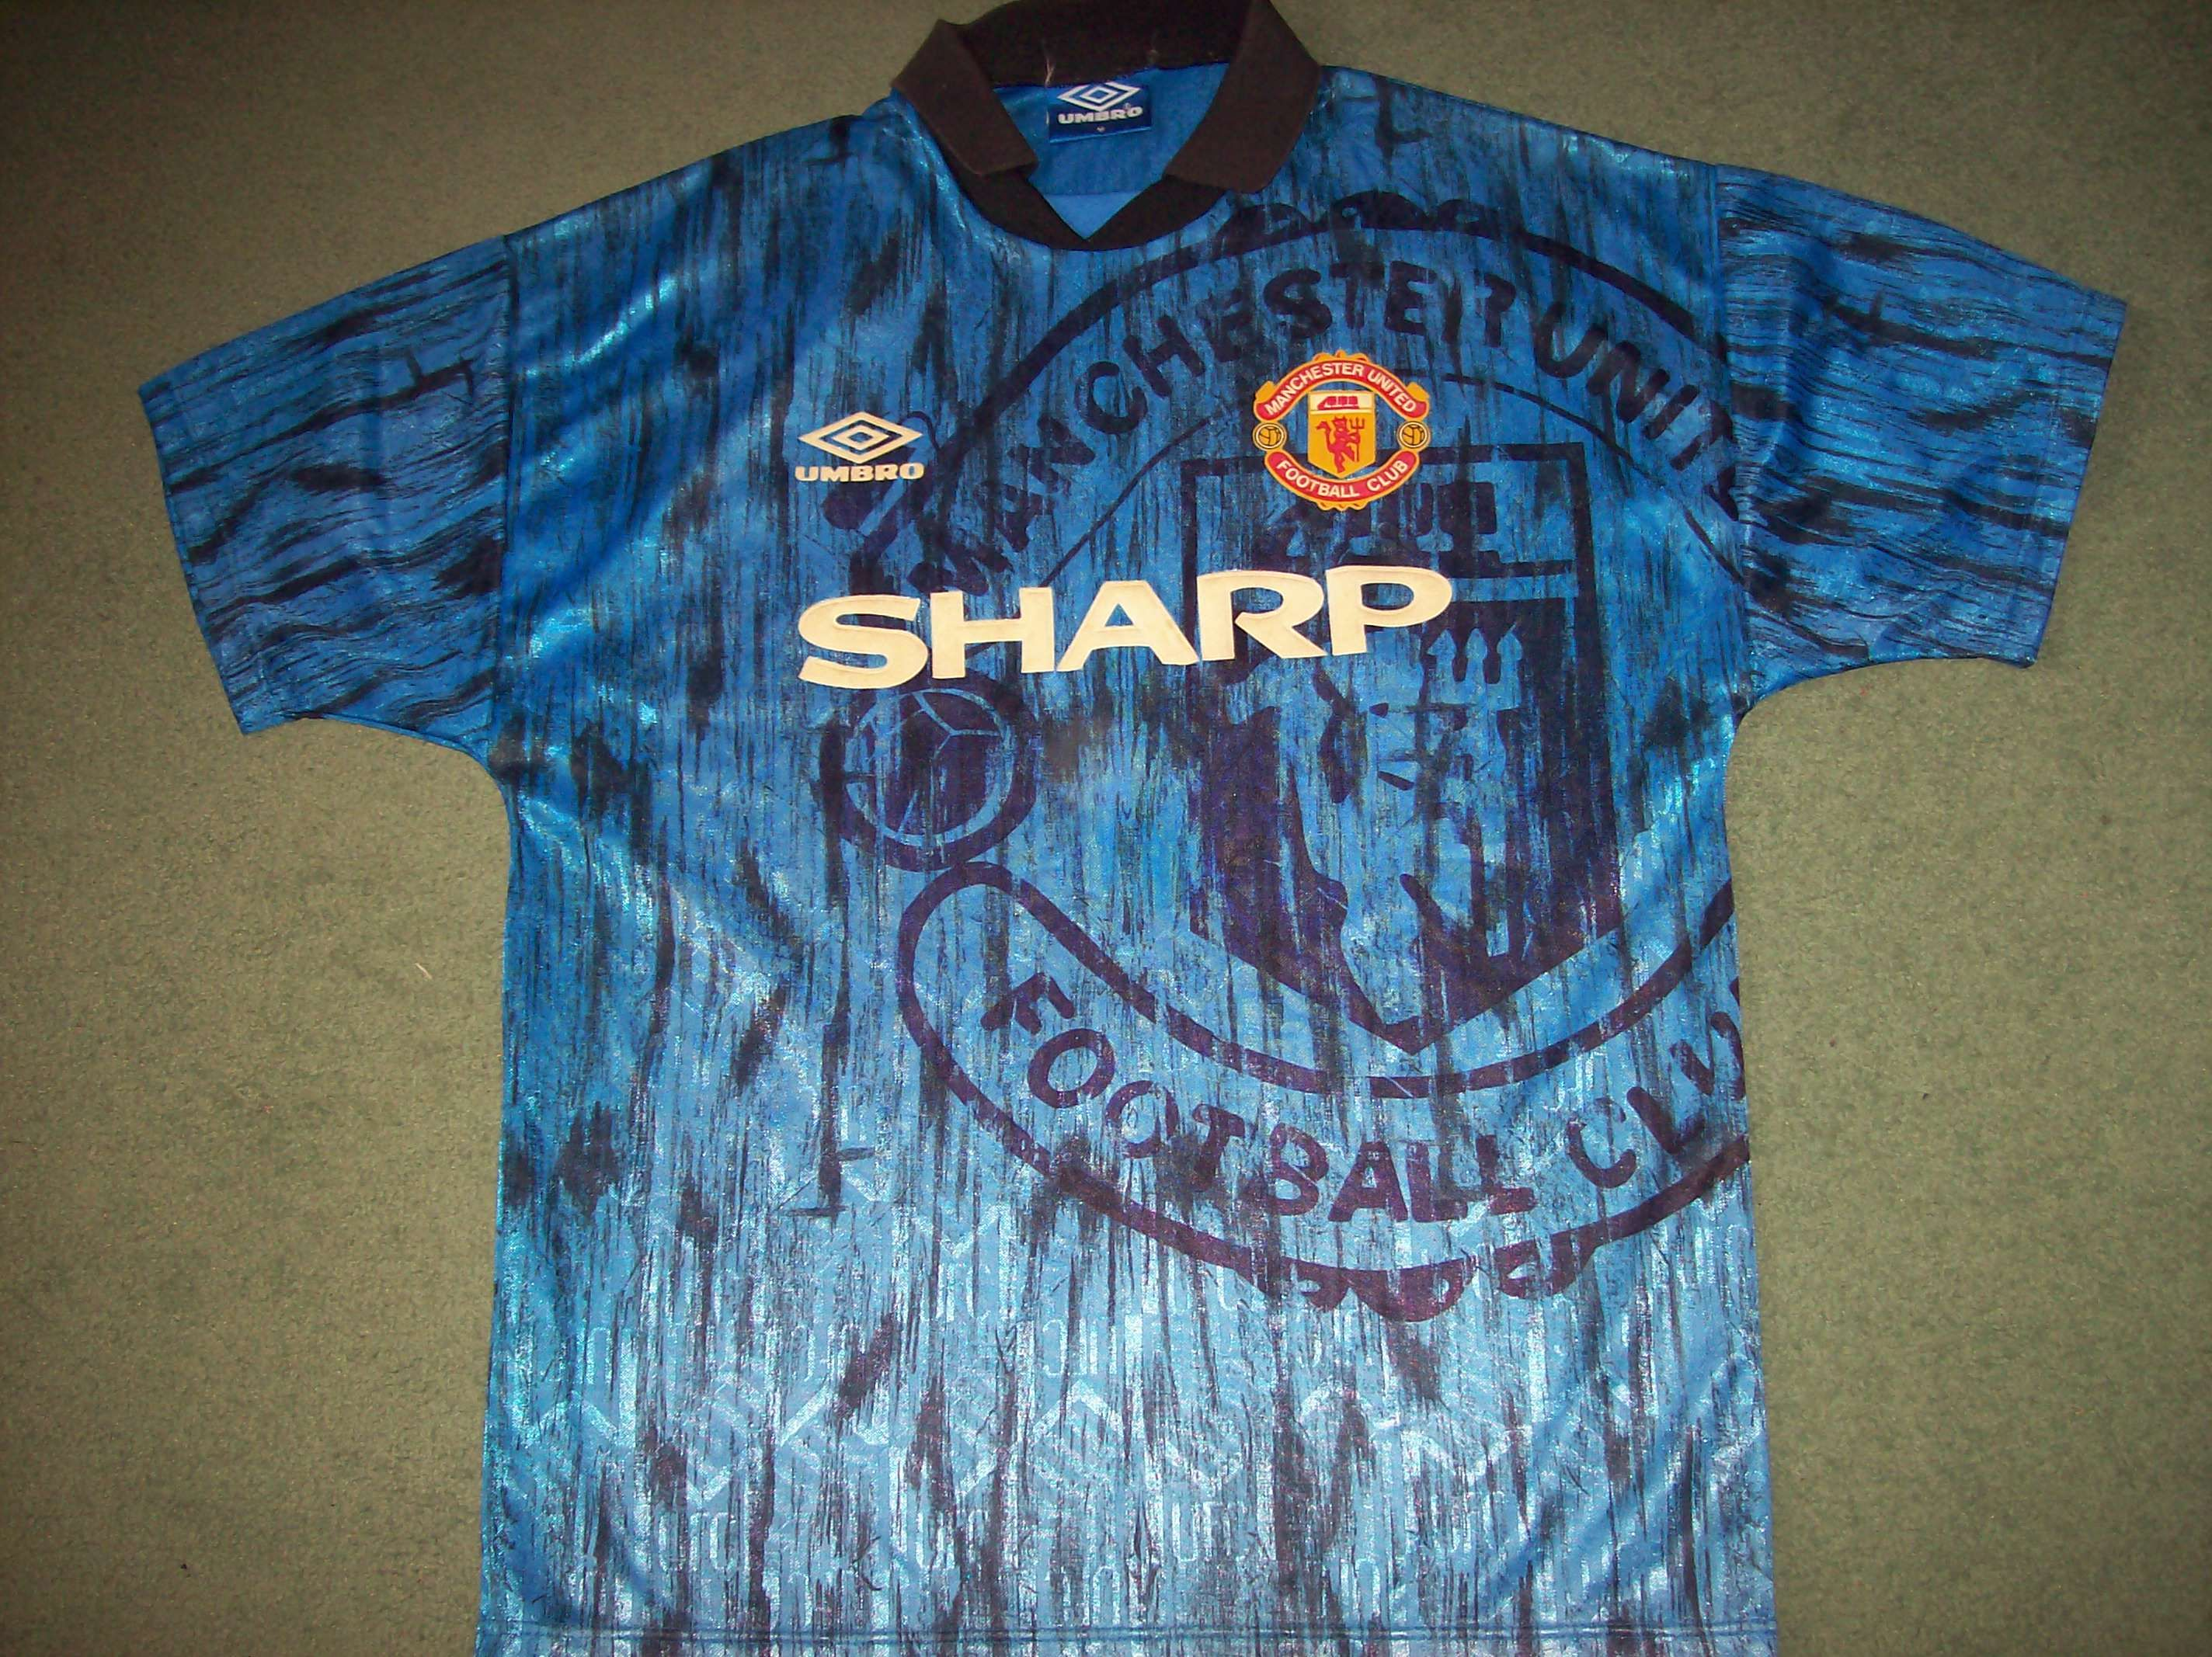 the best attitude 041fd 05e2d Global Classic Football Shirts   1992 Manchester United ...